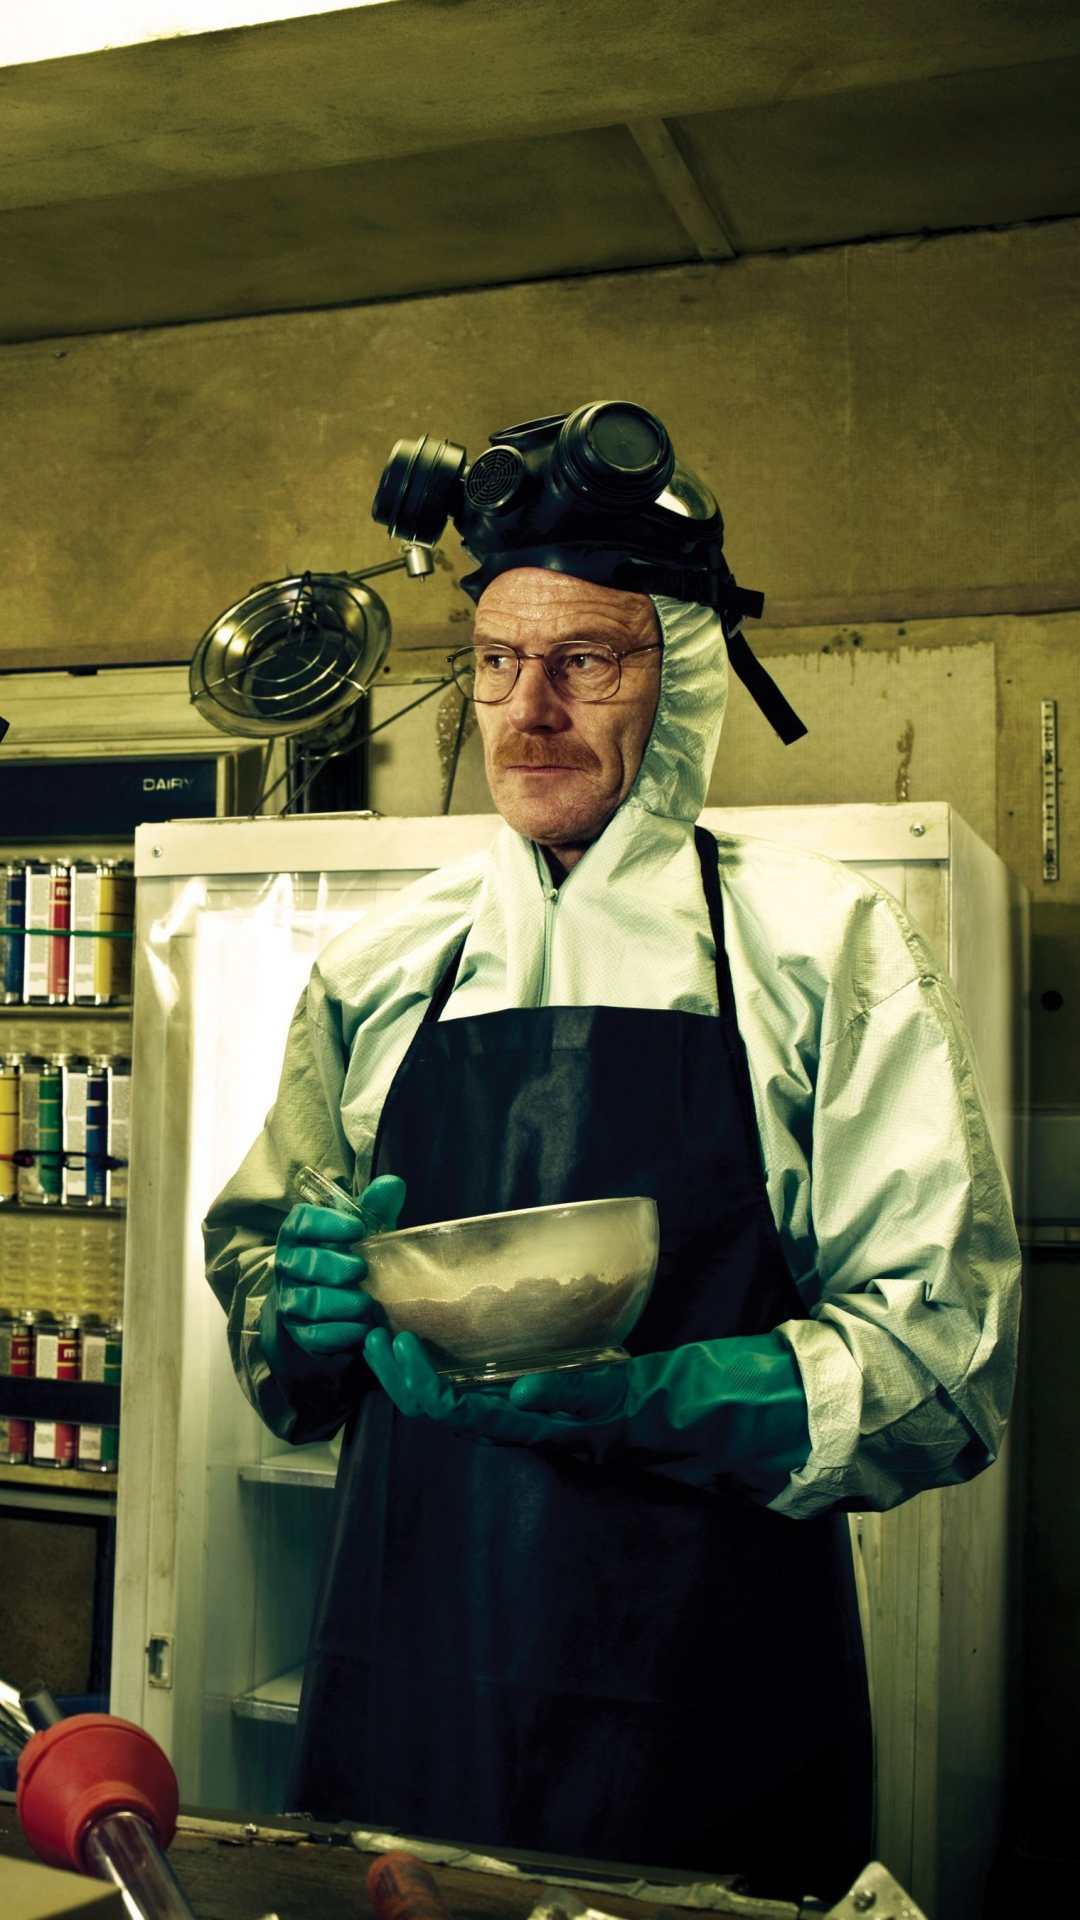 Quotes For Iphone Wallpaper Cute Hd Breaking Bad Backgrounds For Iphone Pixelstalk Net